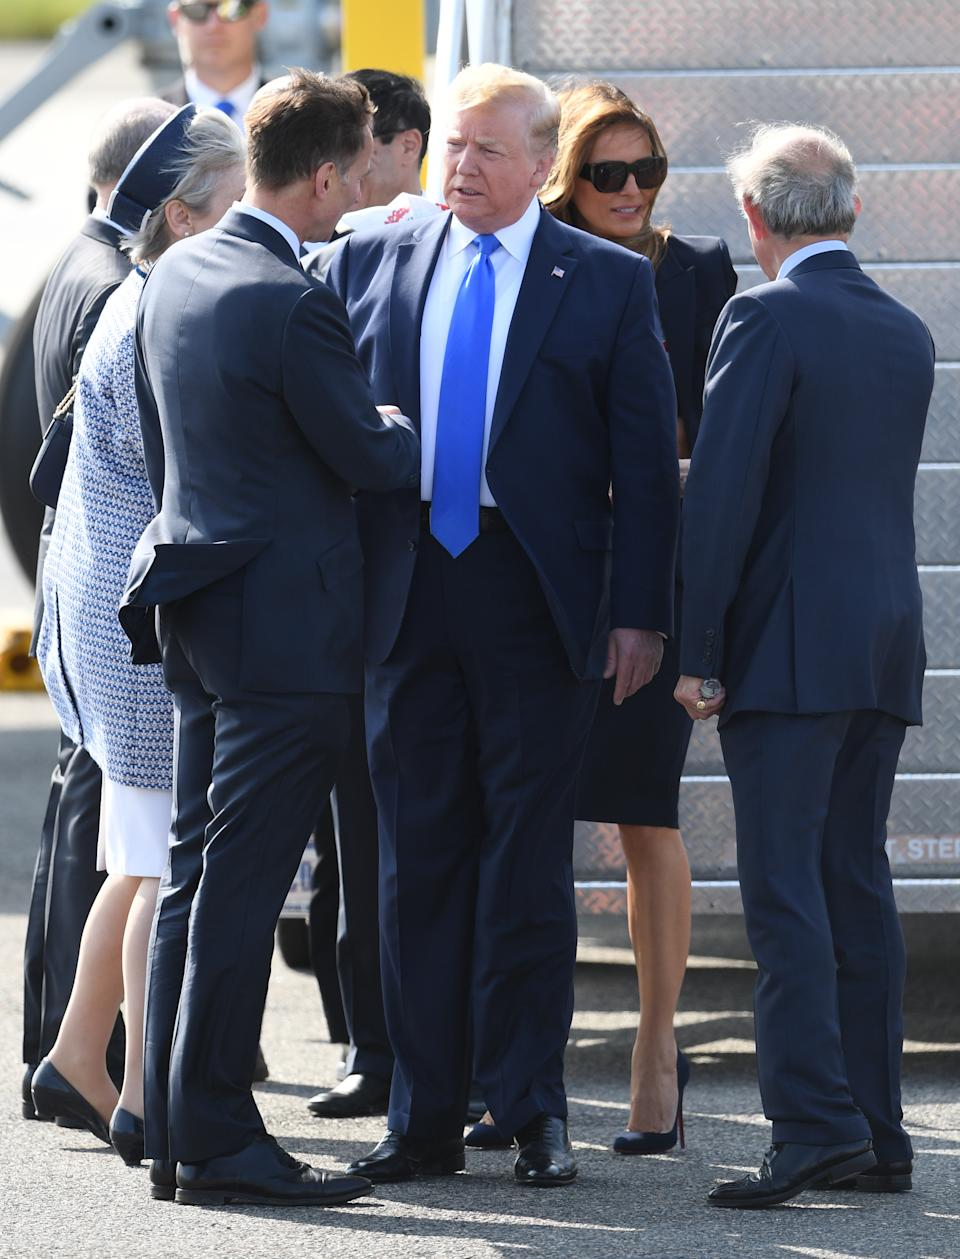 Touching down: President Trump shakes hands with Foreign Secretary Jeremy Hunt on the runway at Stansted.